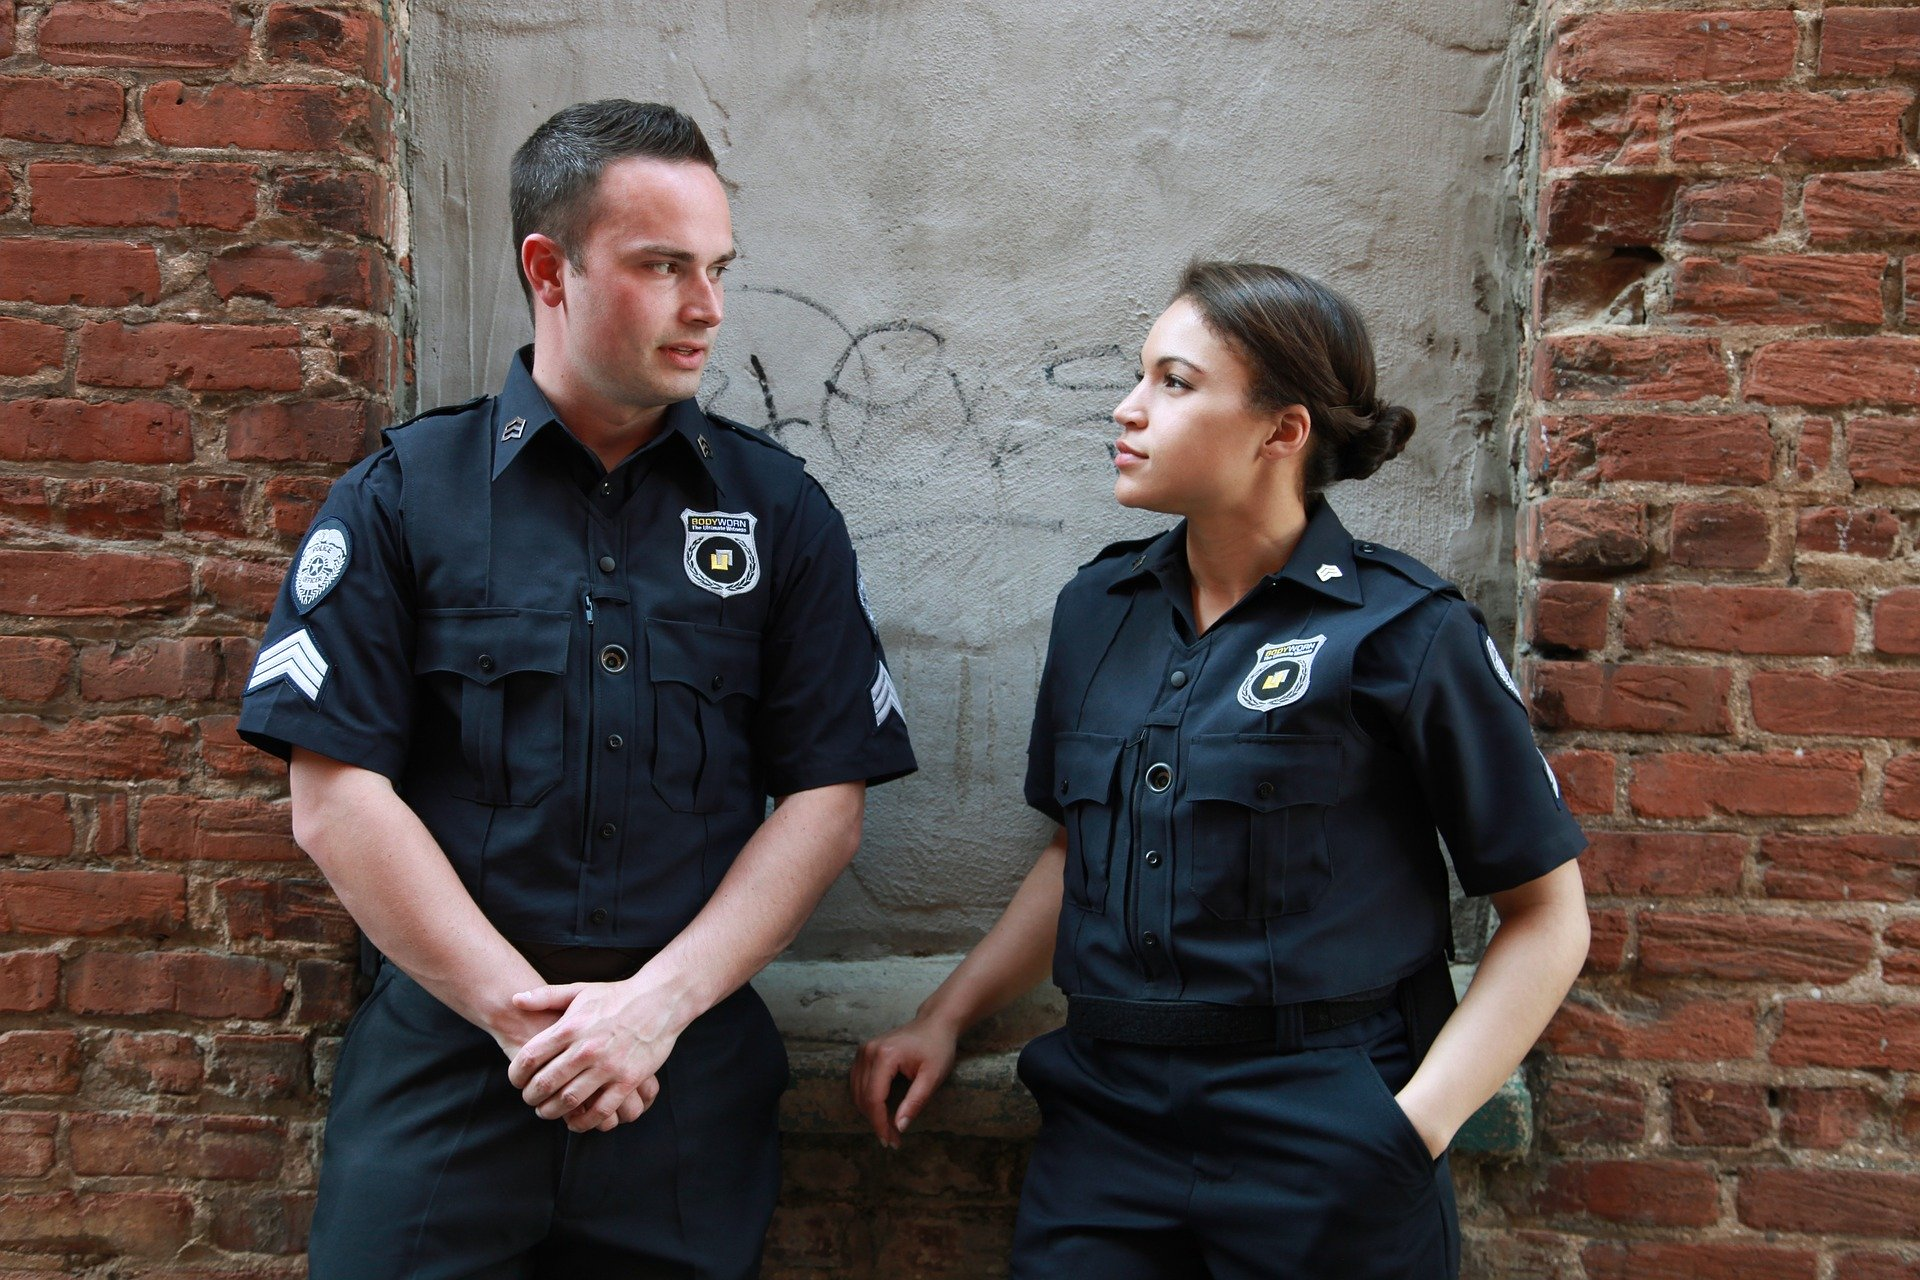 Man and woman police offers talking in front of concrete and brick wall